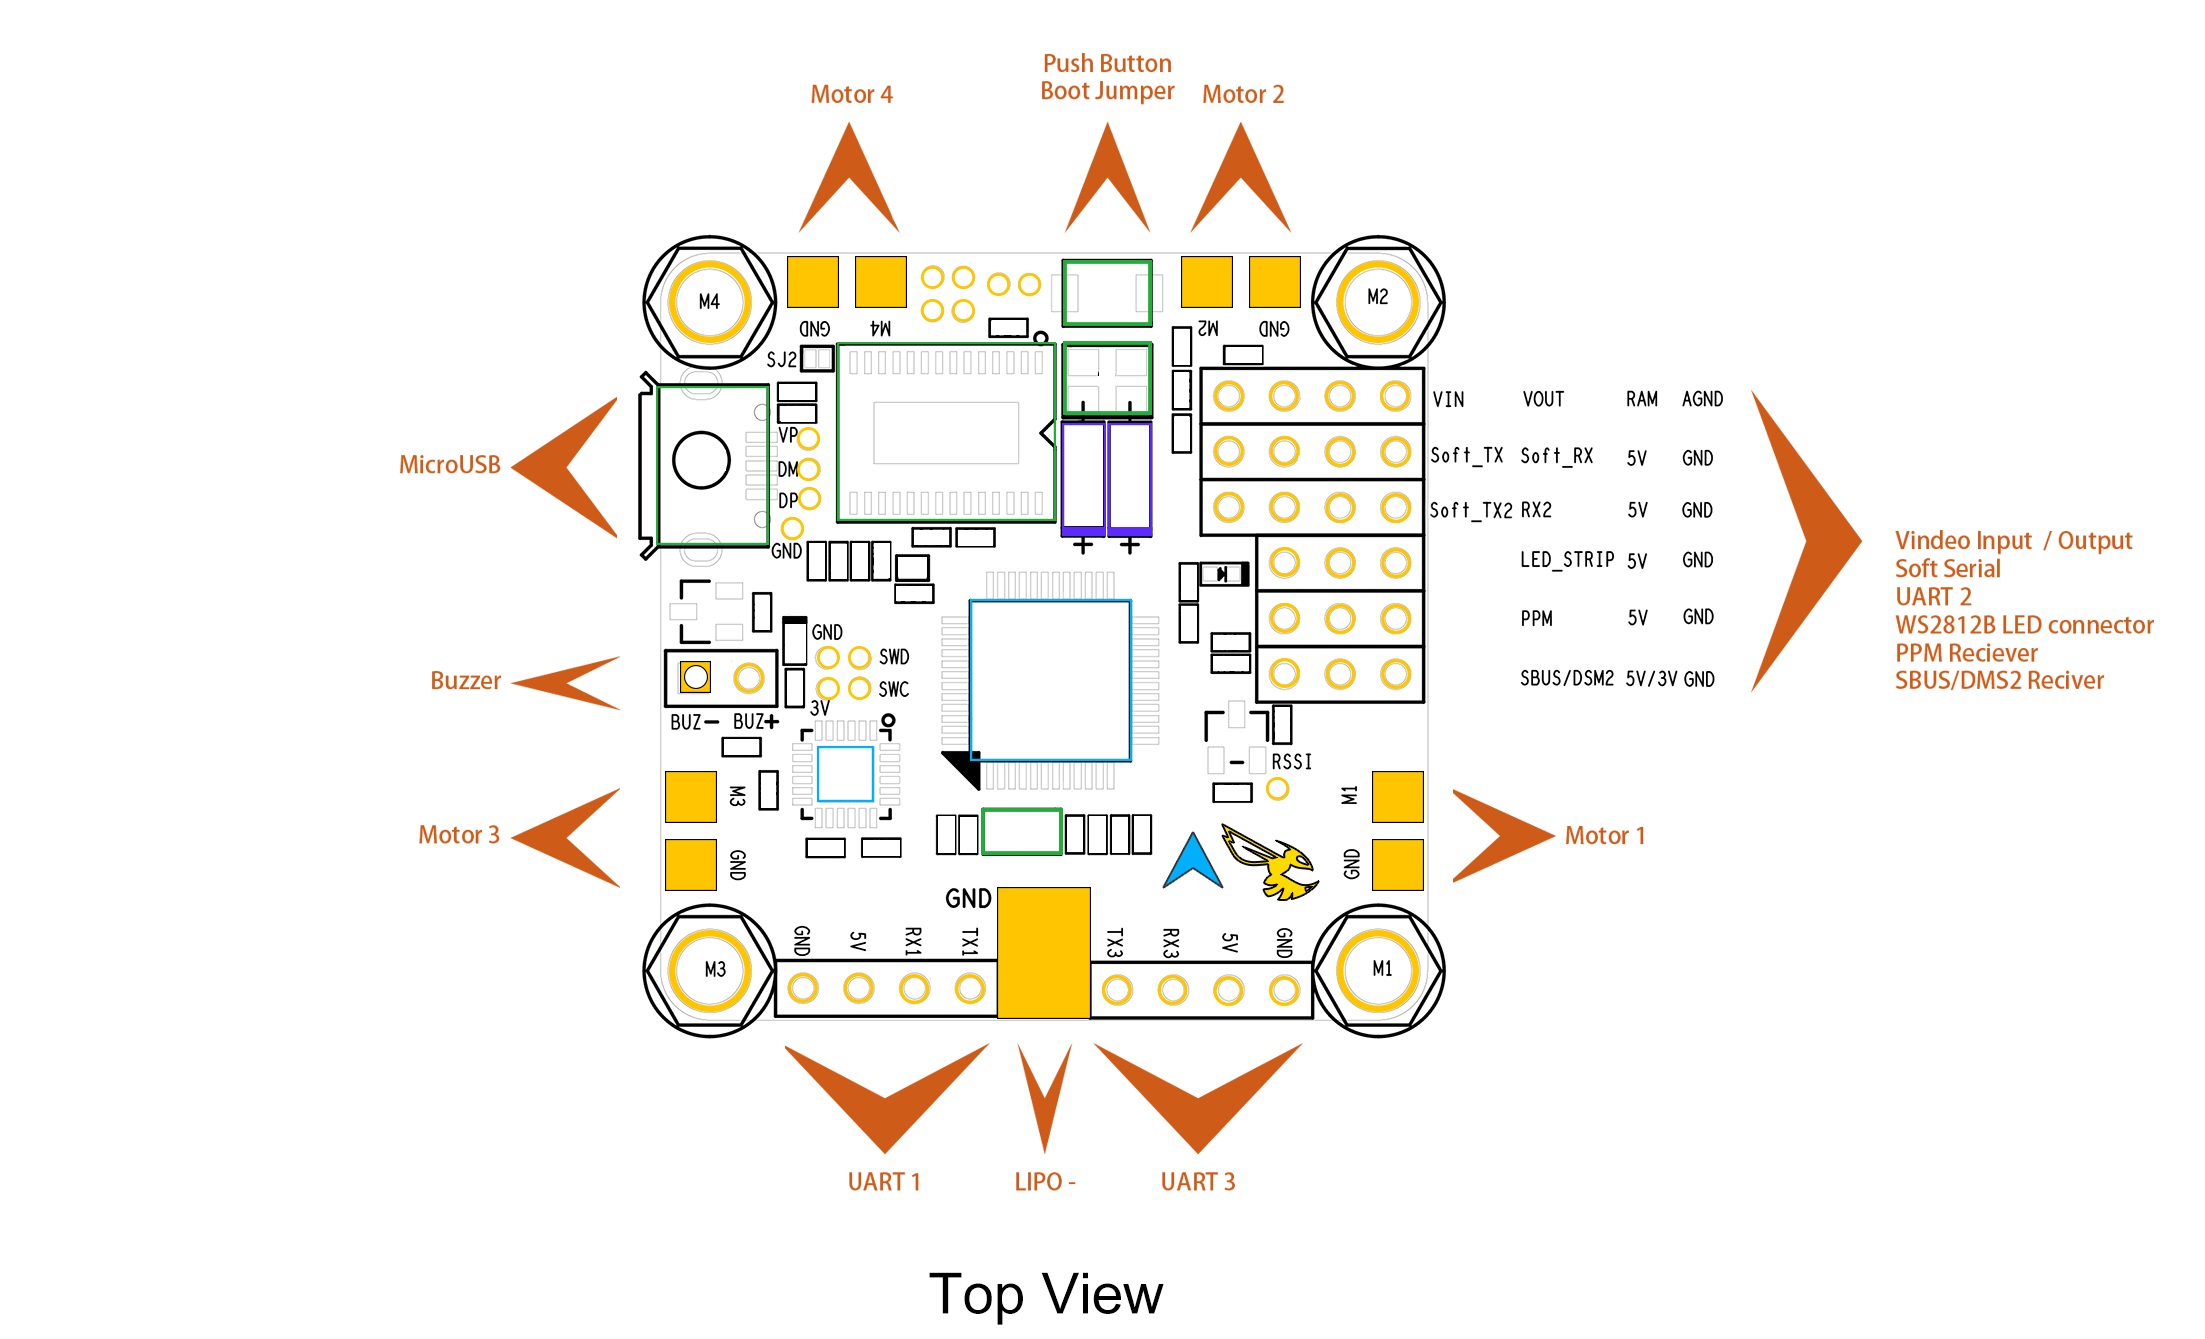 topview omnibus f3 wiring diagram wiring a homeline service panel \u2022 45 63  at bayanpartner.co